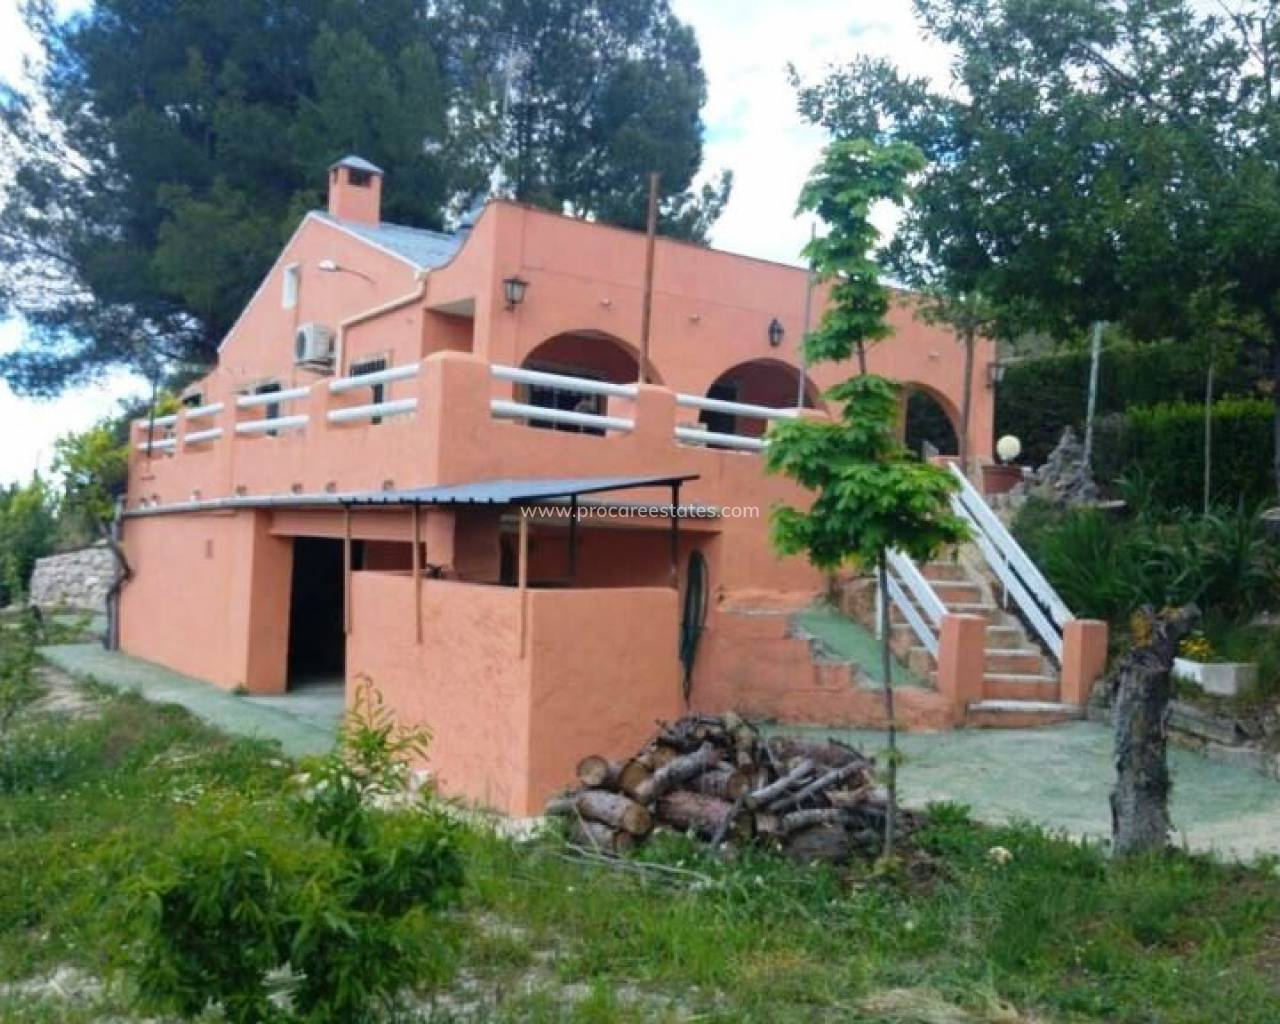 Revente - Country Property - Cocentaina